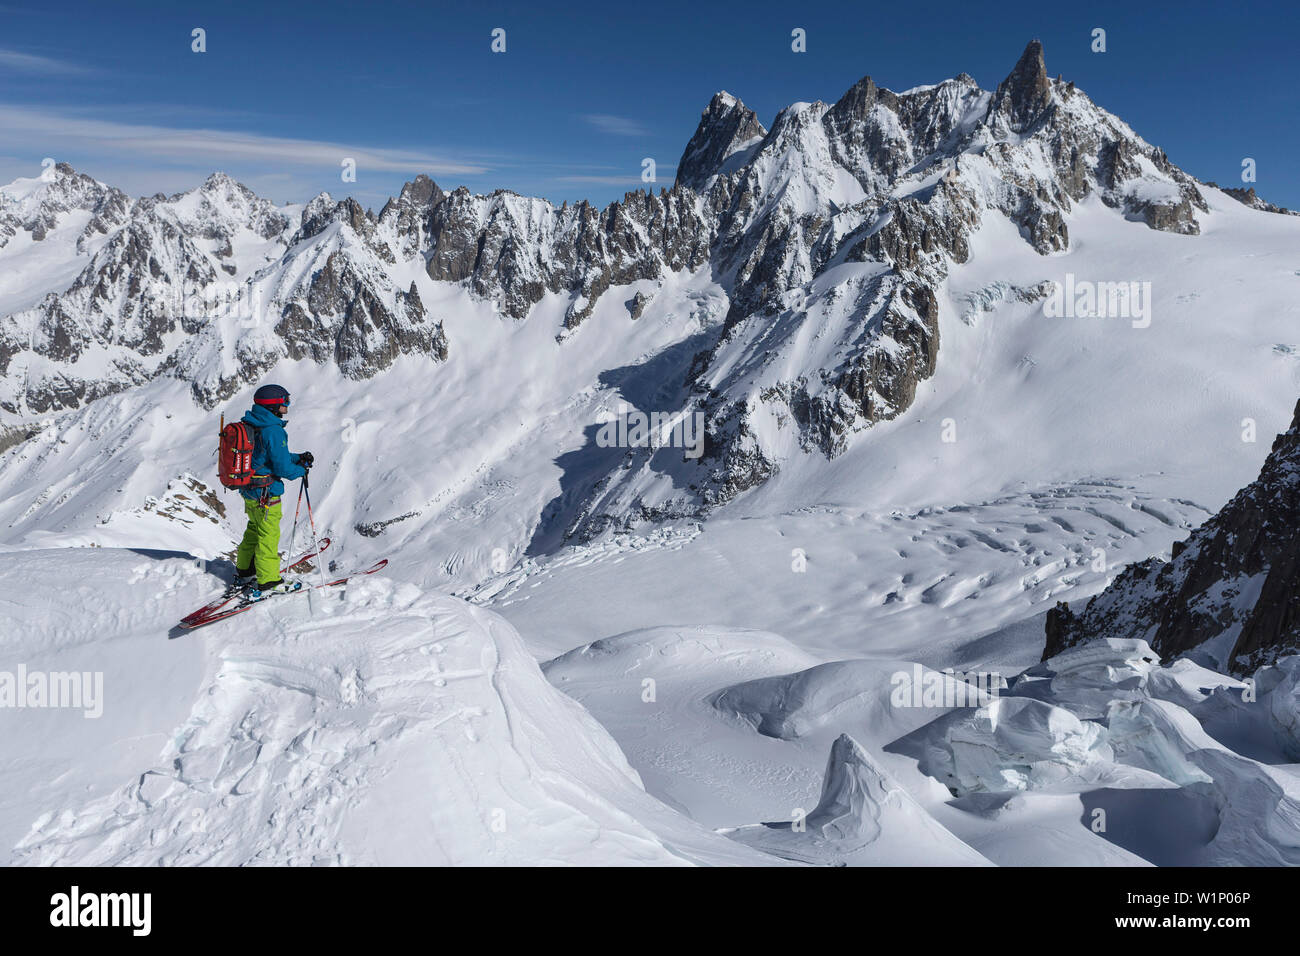 Skiers in Vallee Blanche with Grandes Jorasses 4208 m, Aiguille du Midi 3842 m, Chamonix, France - Stock Image